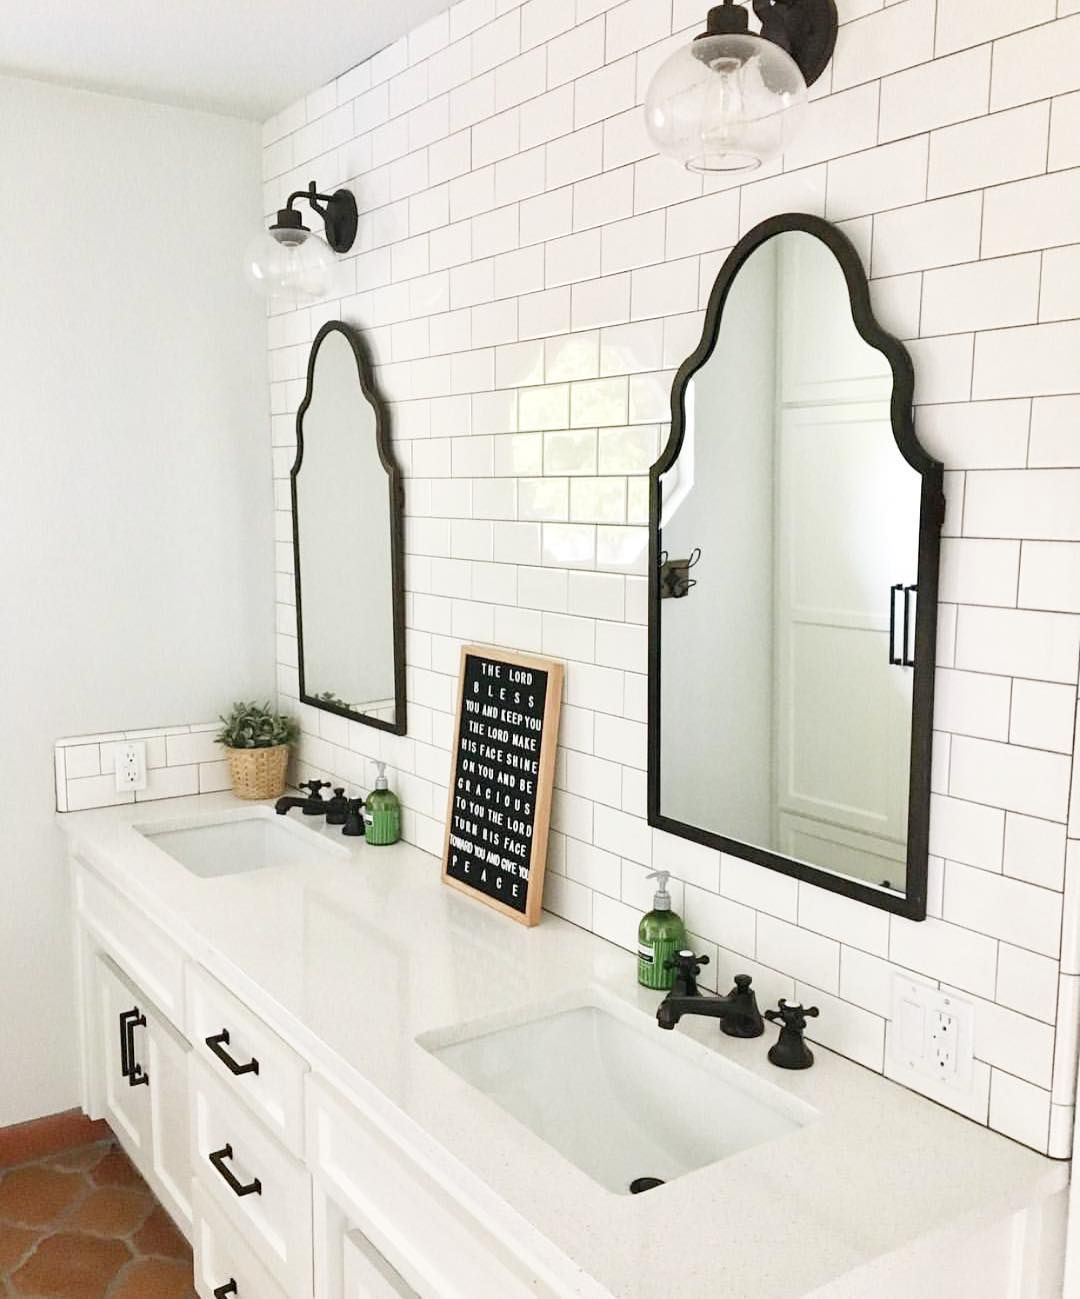 Bright White Bathroom Double Vanity Tile Wall With Images